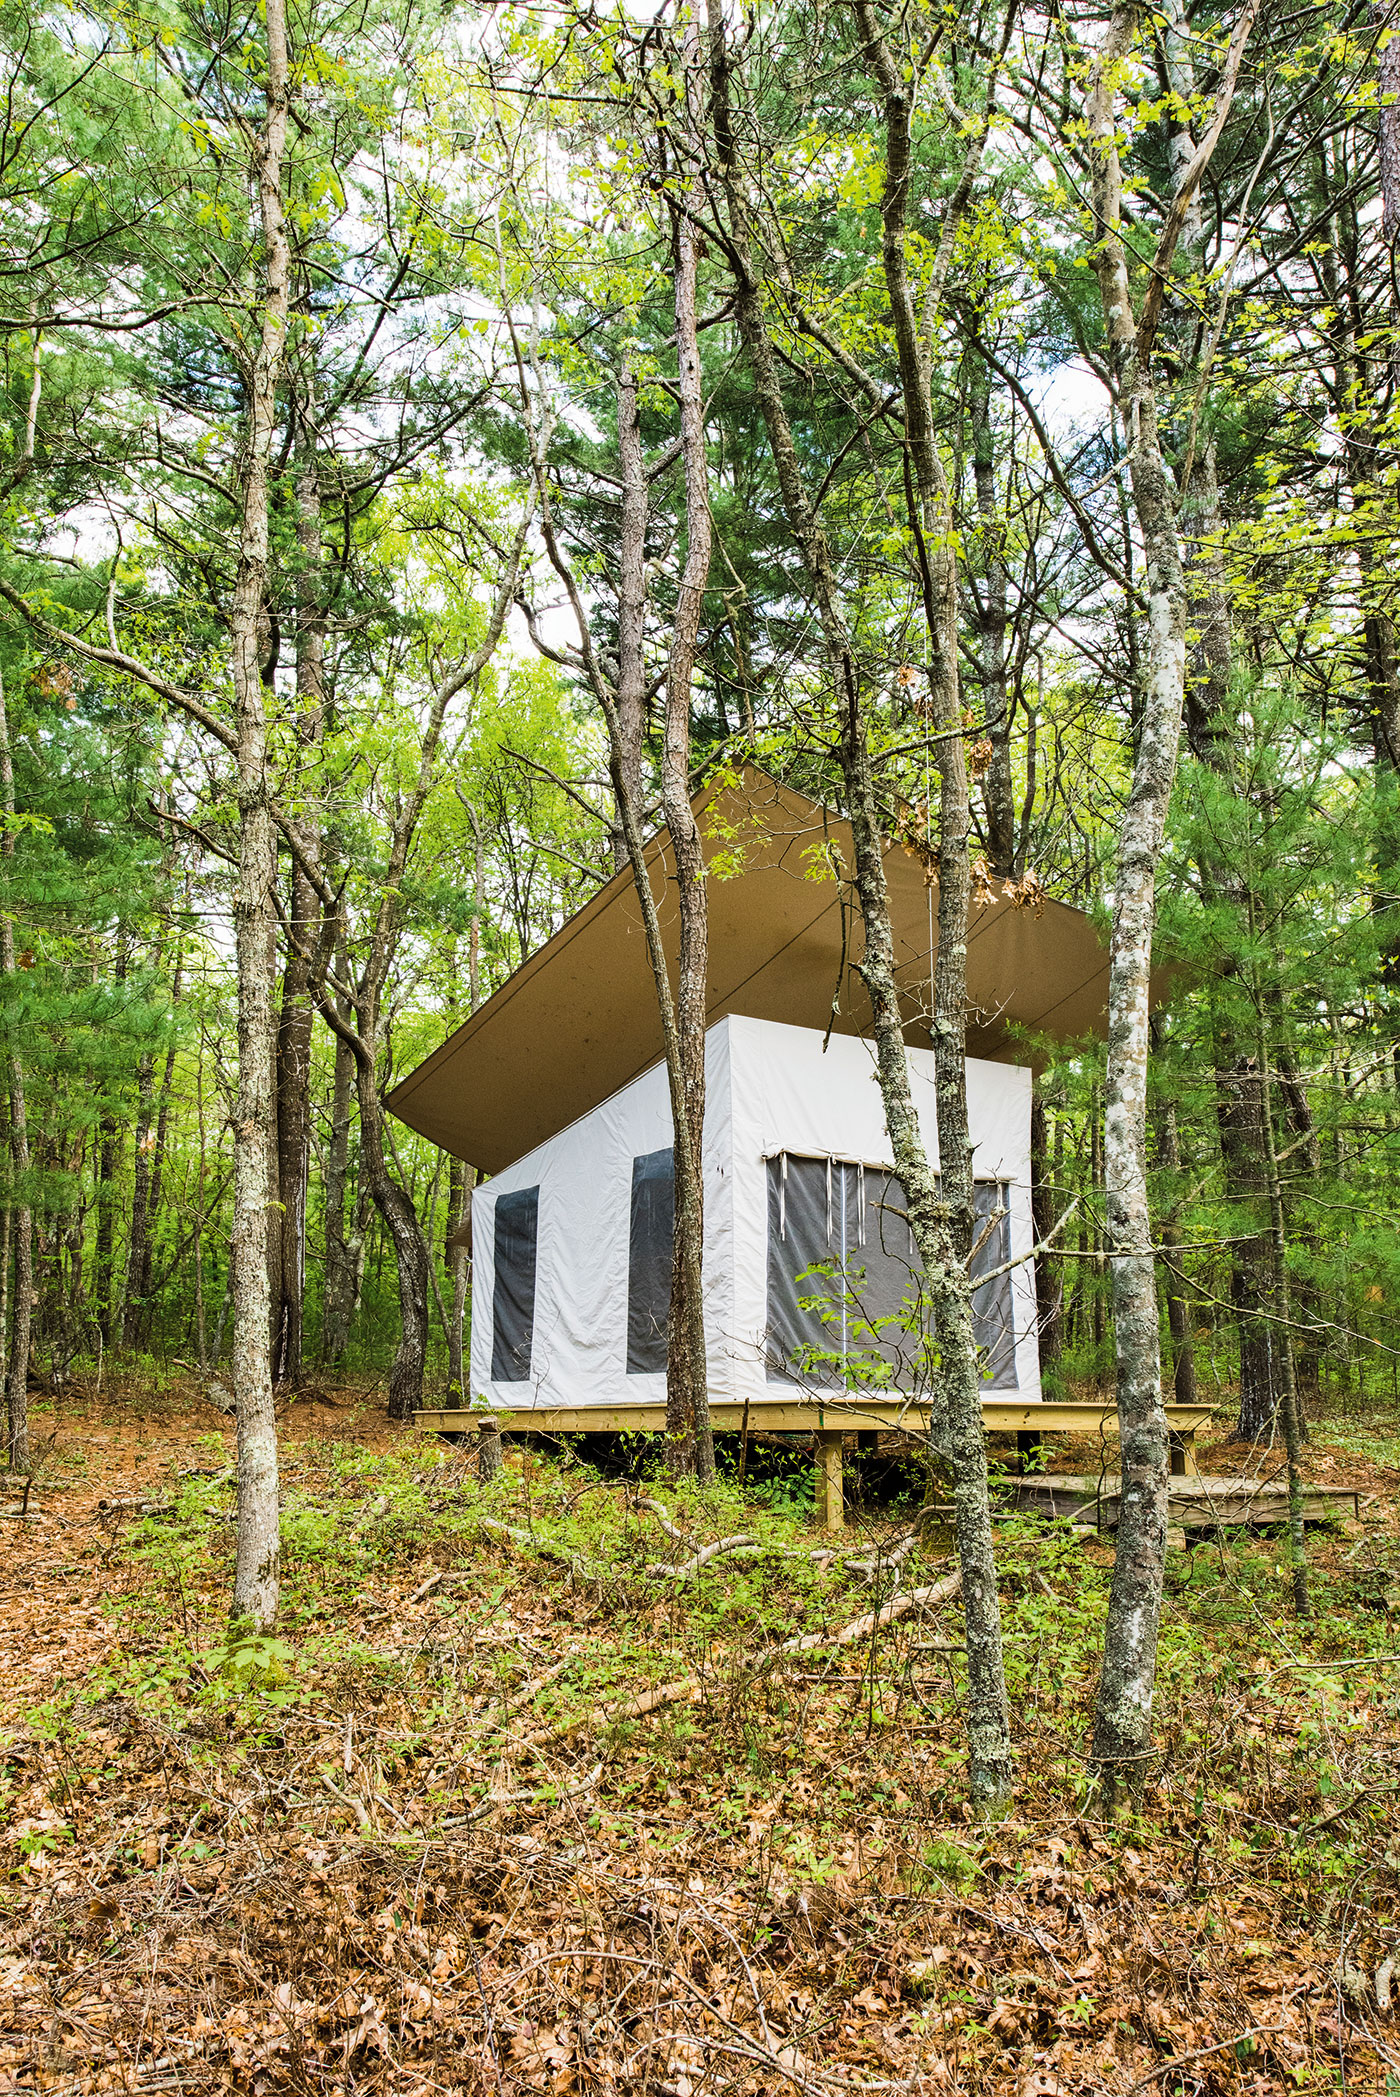 Kids Glamp designed by Cape Cod architect Jill Neubauer of Jill Neubauer Architects